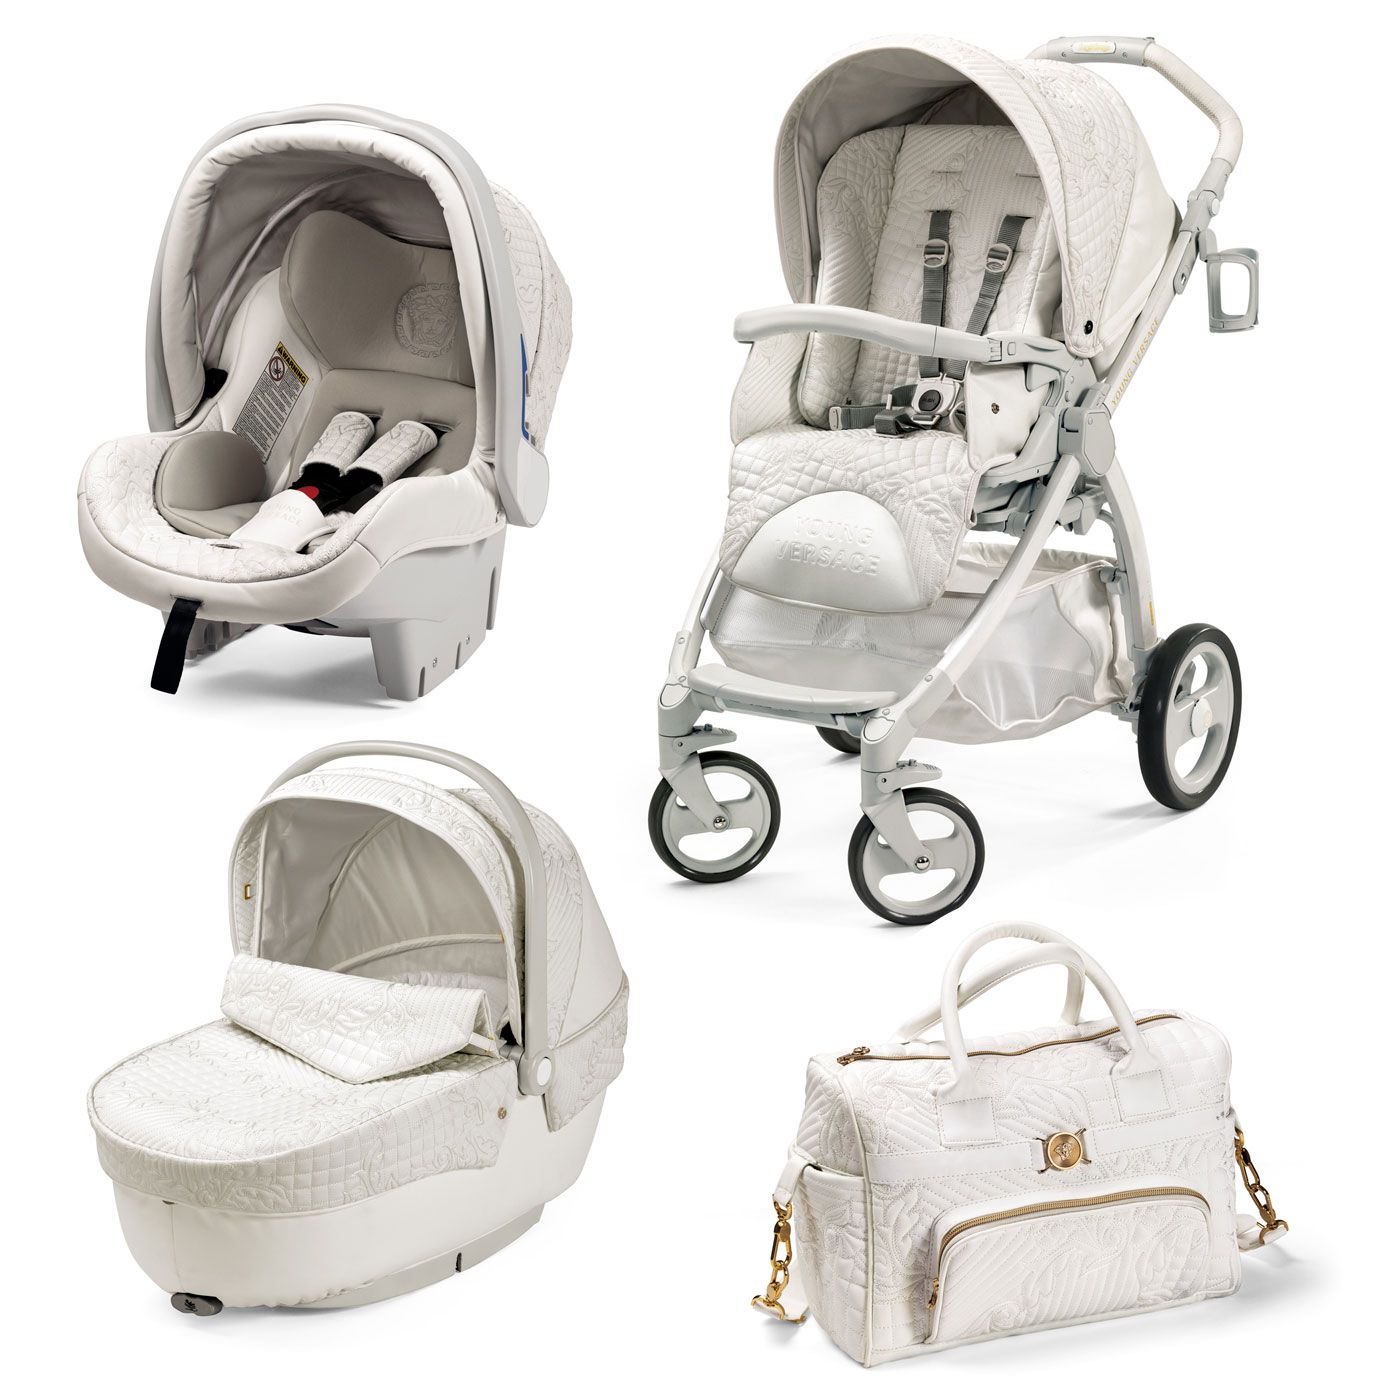 I share Young Versace Stroller White with Pinterest from Babyshop item page